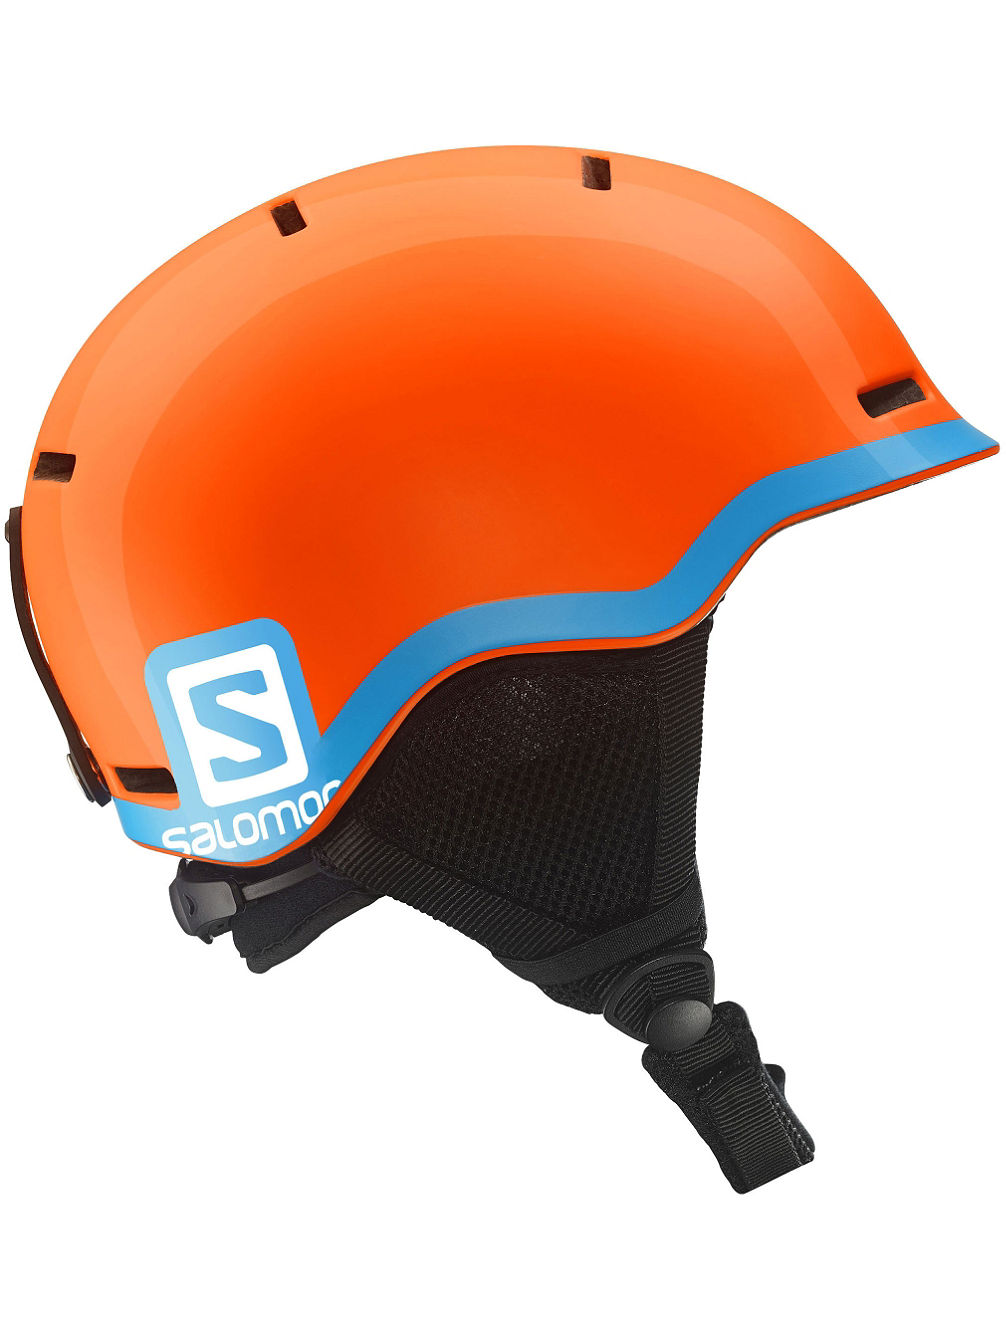 Grom Helmet Youth